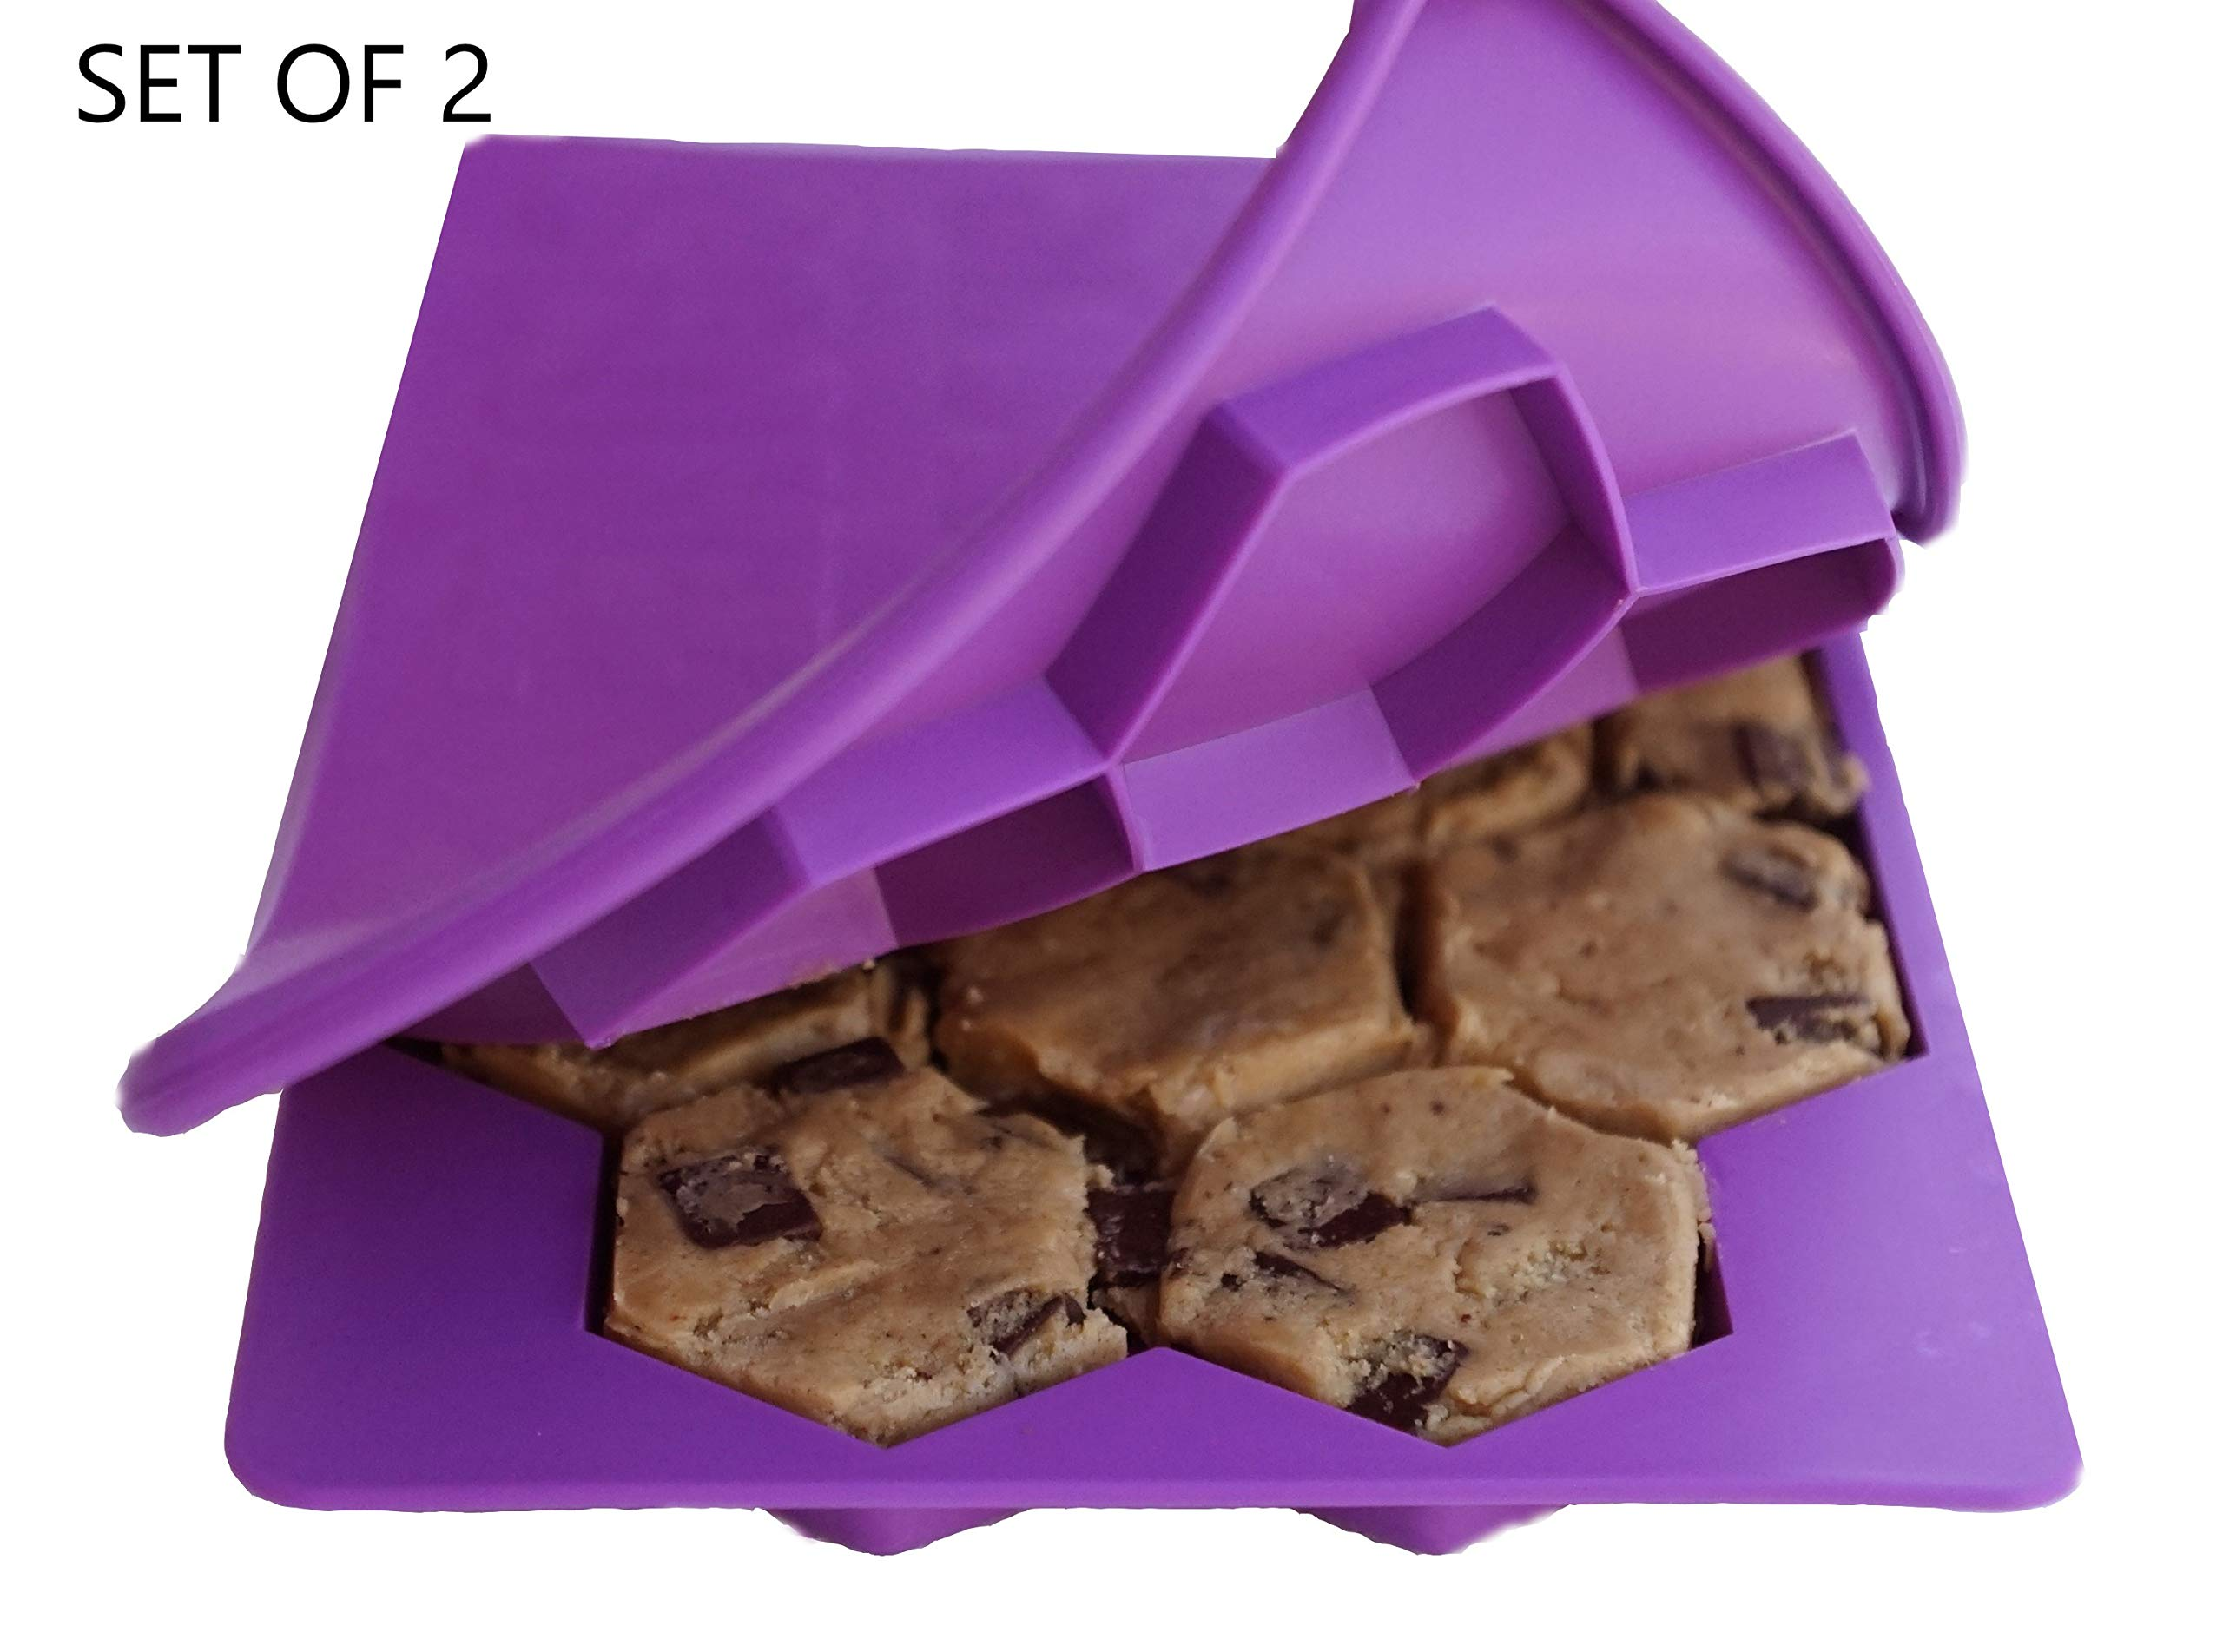 Shape+Store Smart Cookie Set of 2 Innovative 13-in-1 Cookie Makers (Purple)